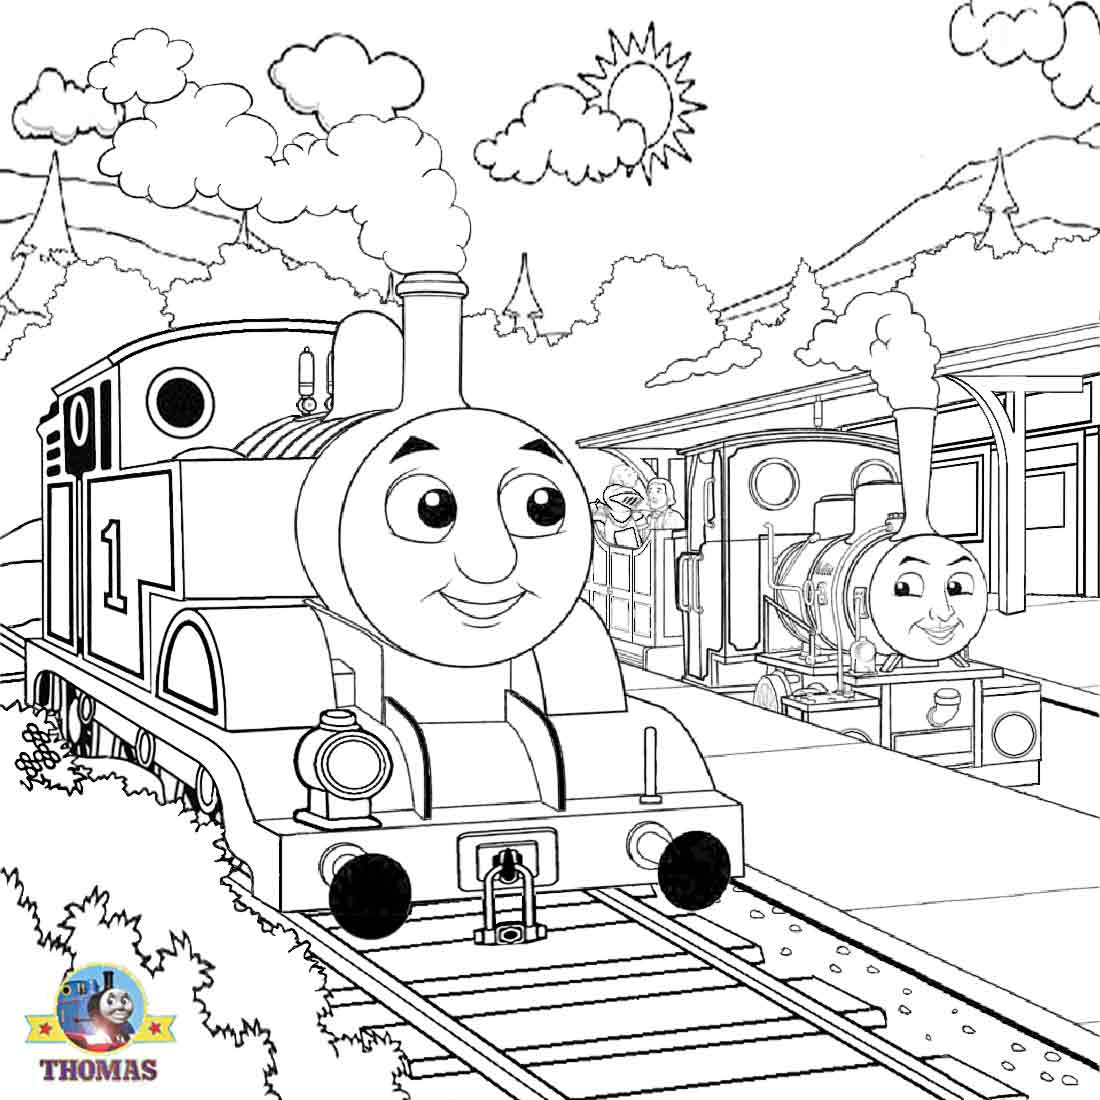 Train Images For Drawing At Getdrawings